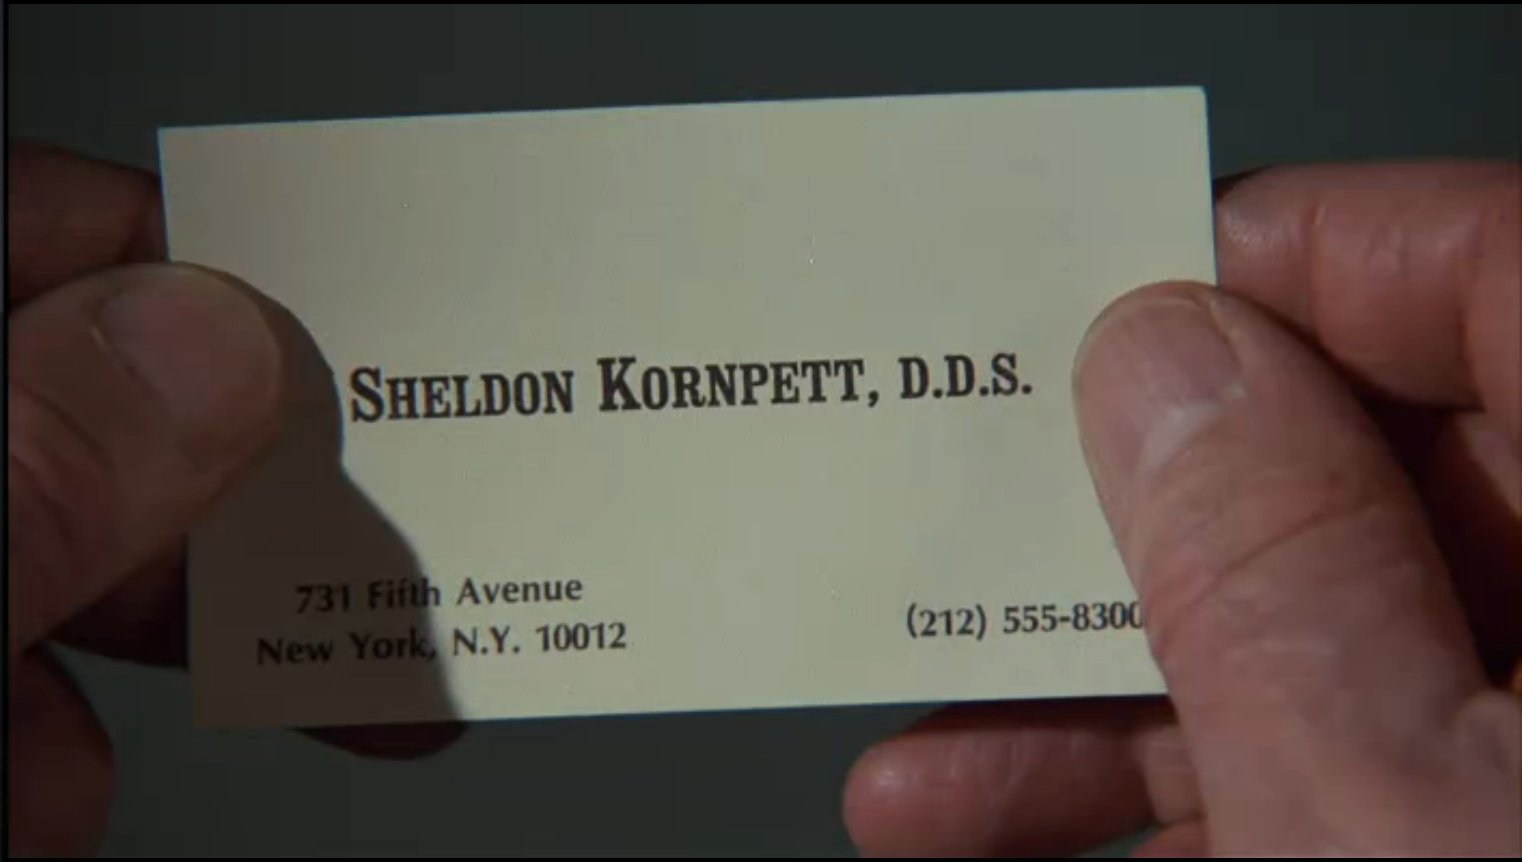 GALLERY: Business Cards in Cinema |